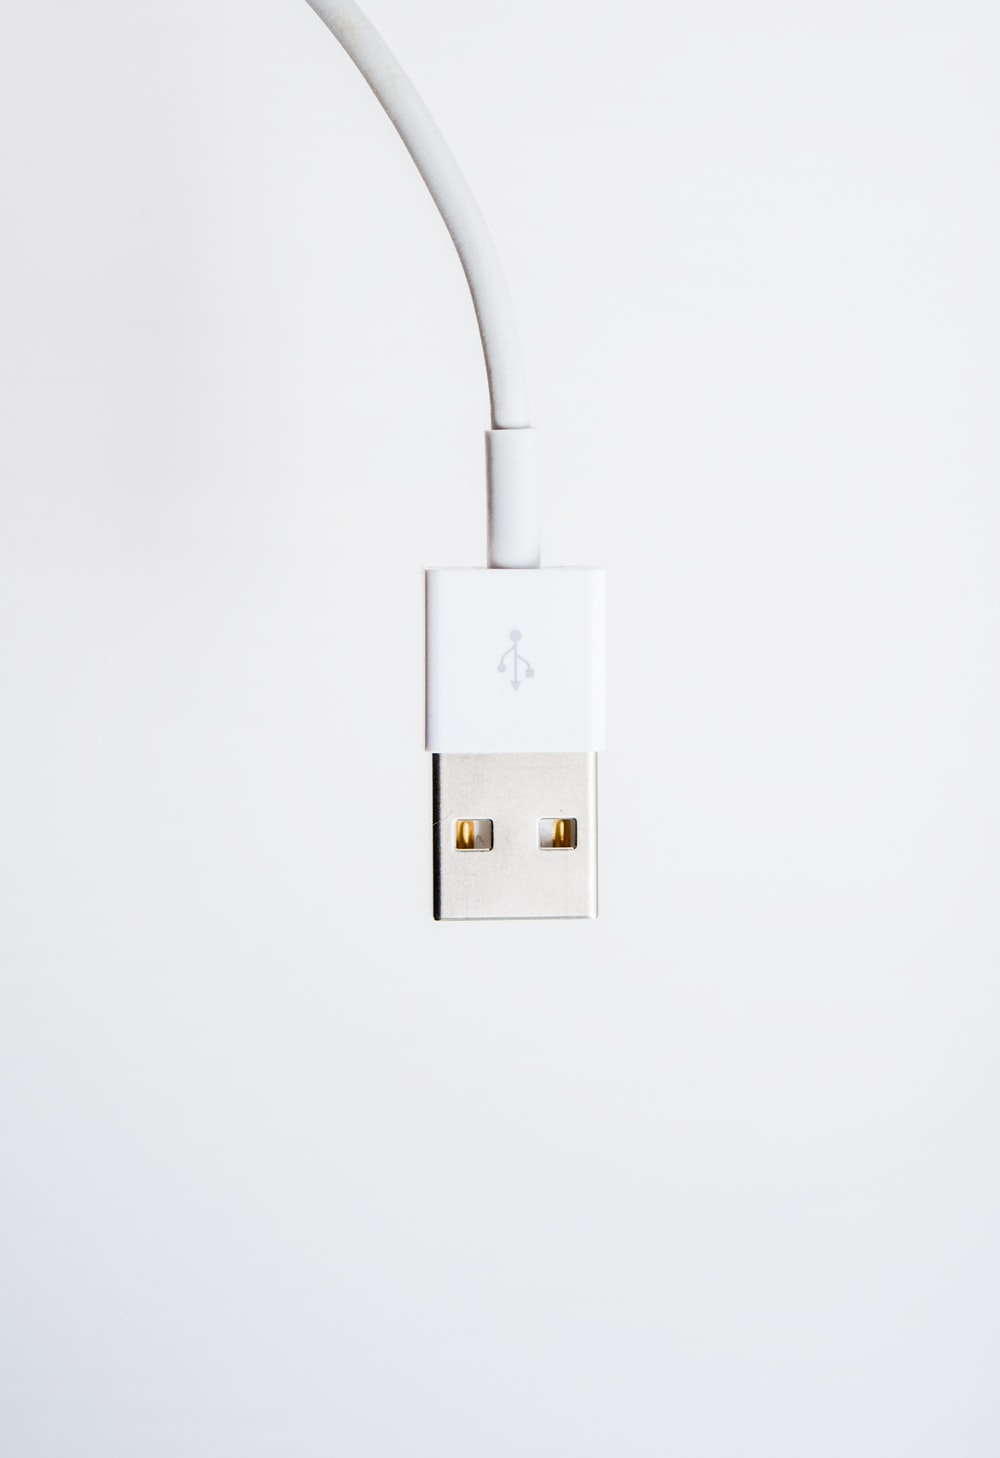 white usb cable on white surface